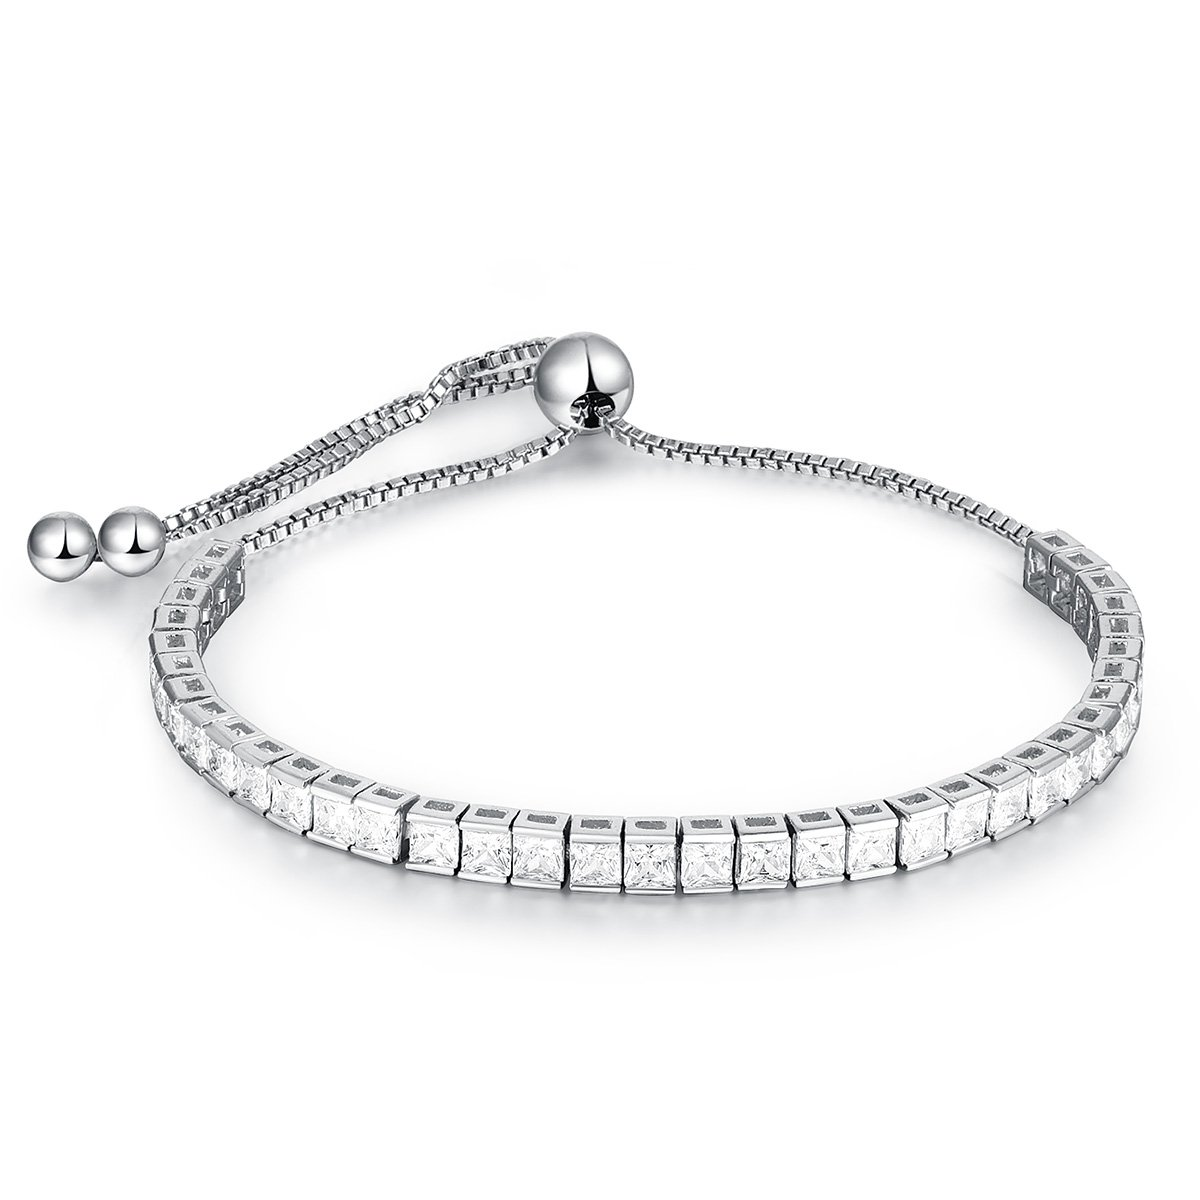 OPALTOP 4mm Princess Shape Cubic Zirconia Adjustable Tennis Bracelet White Gold Plated for Women Girls